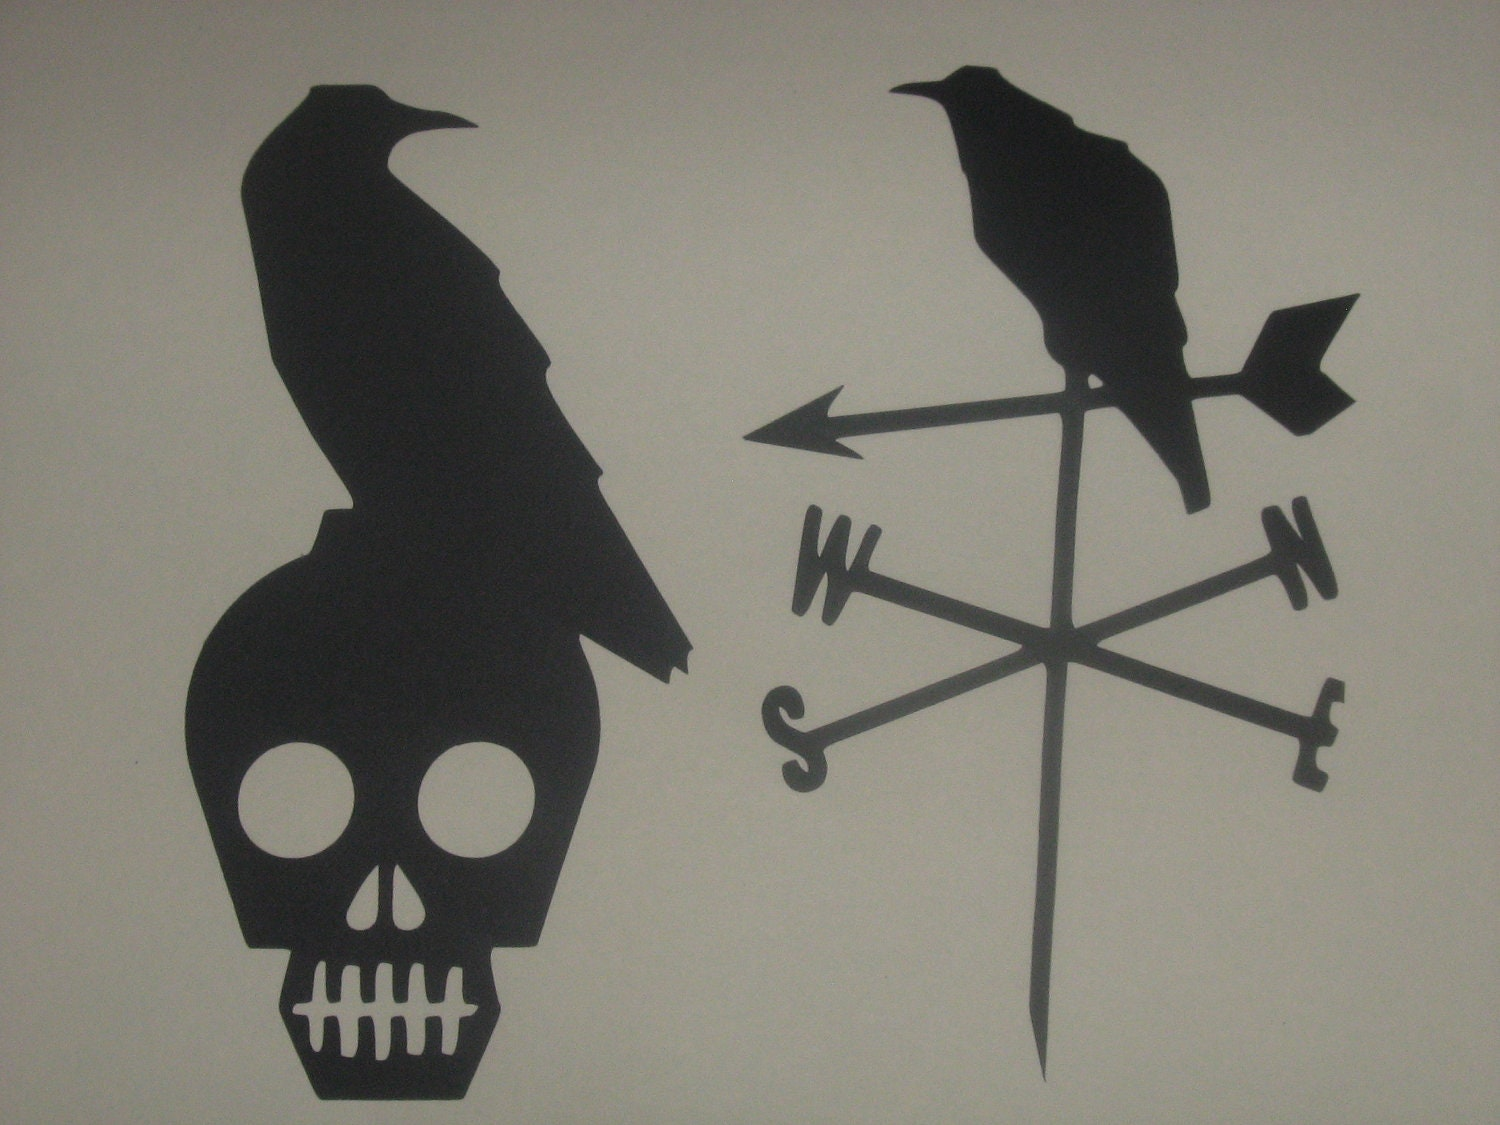 Halloween silhouettes Crows Skulls scary decorations